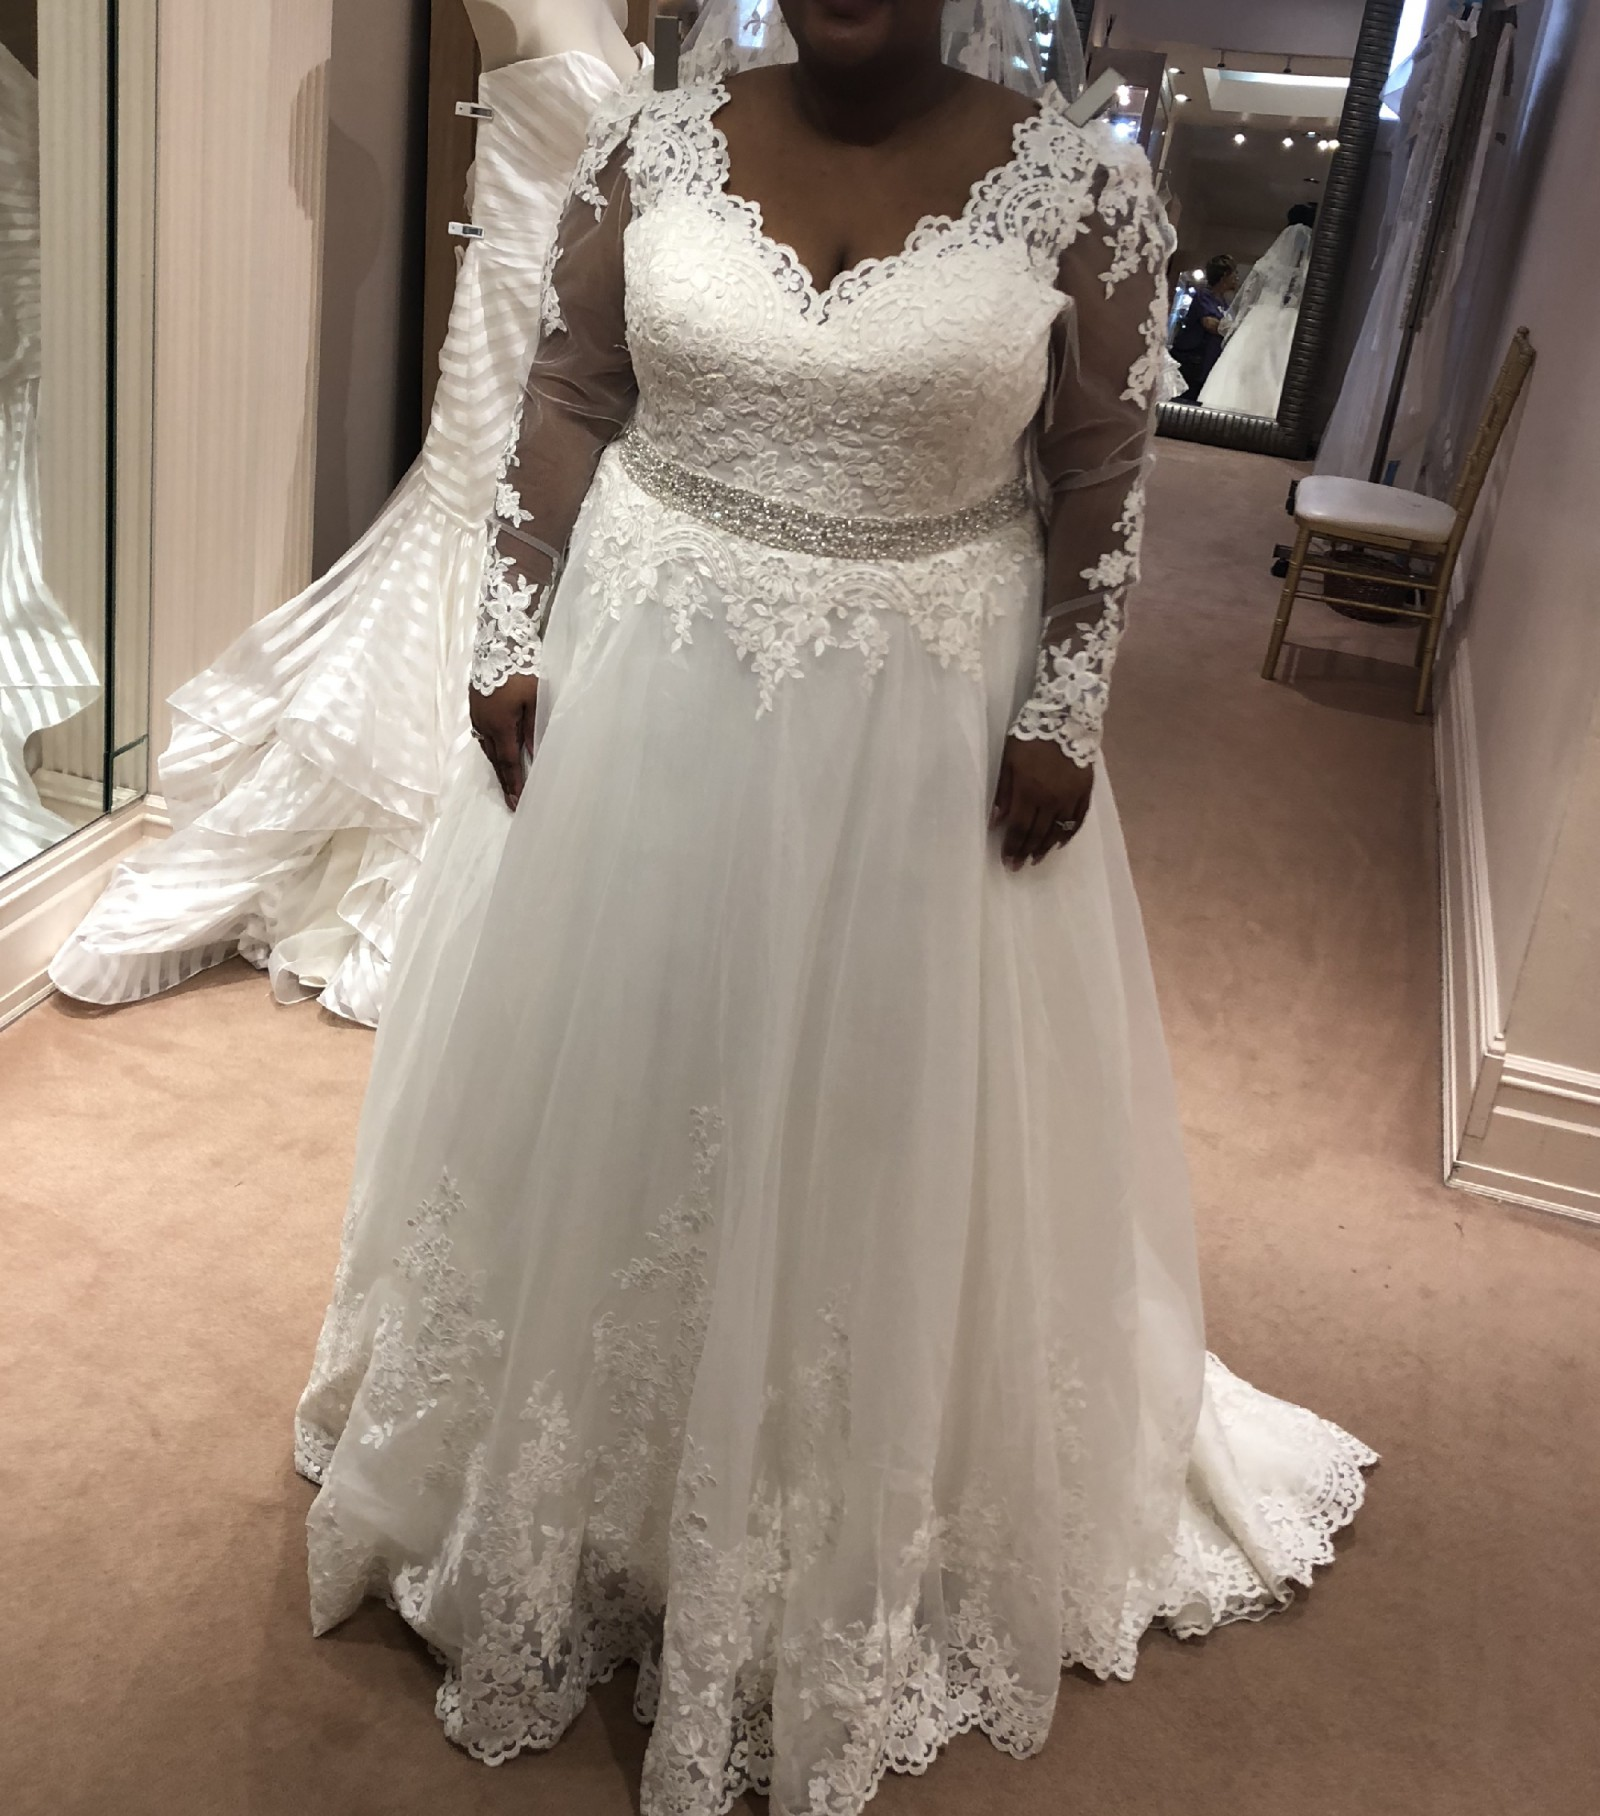 Venus New Wedding Dress On Sale 38% Off